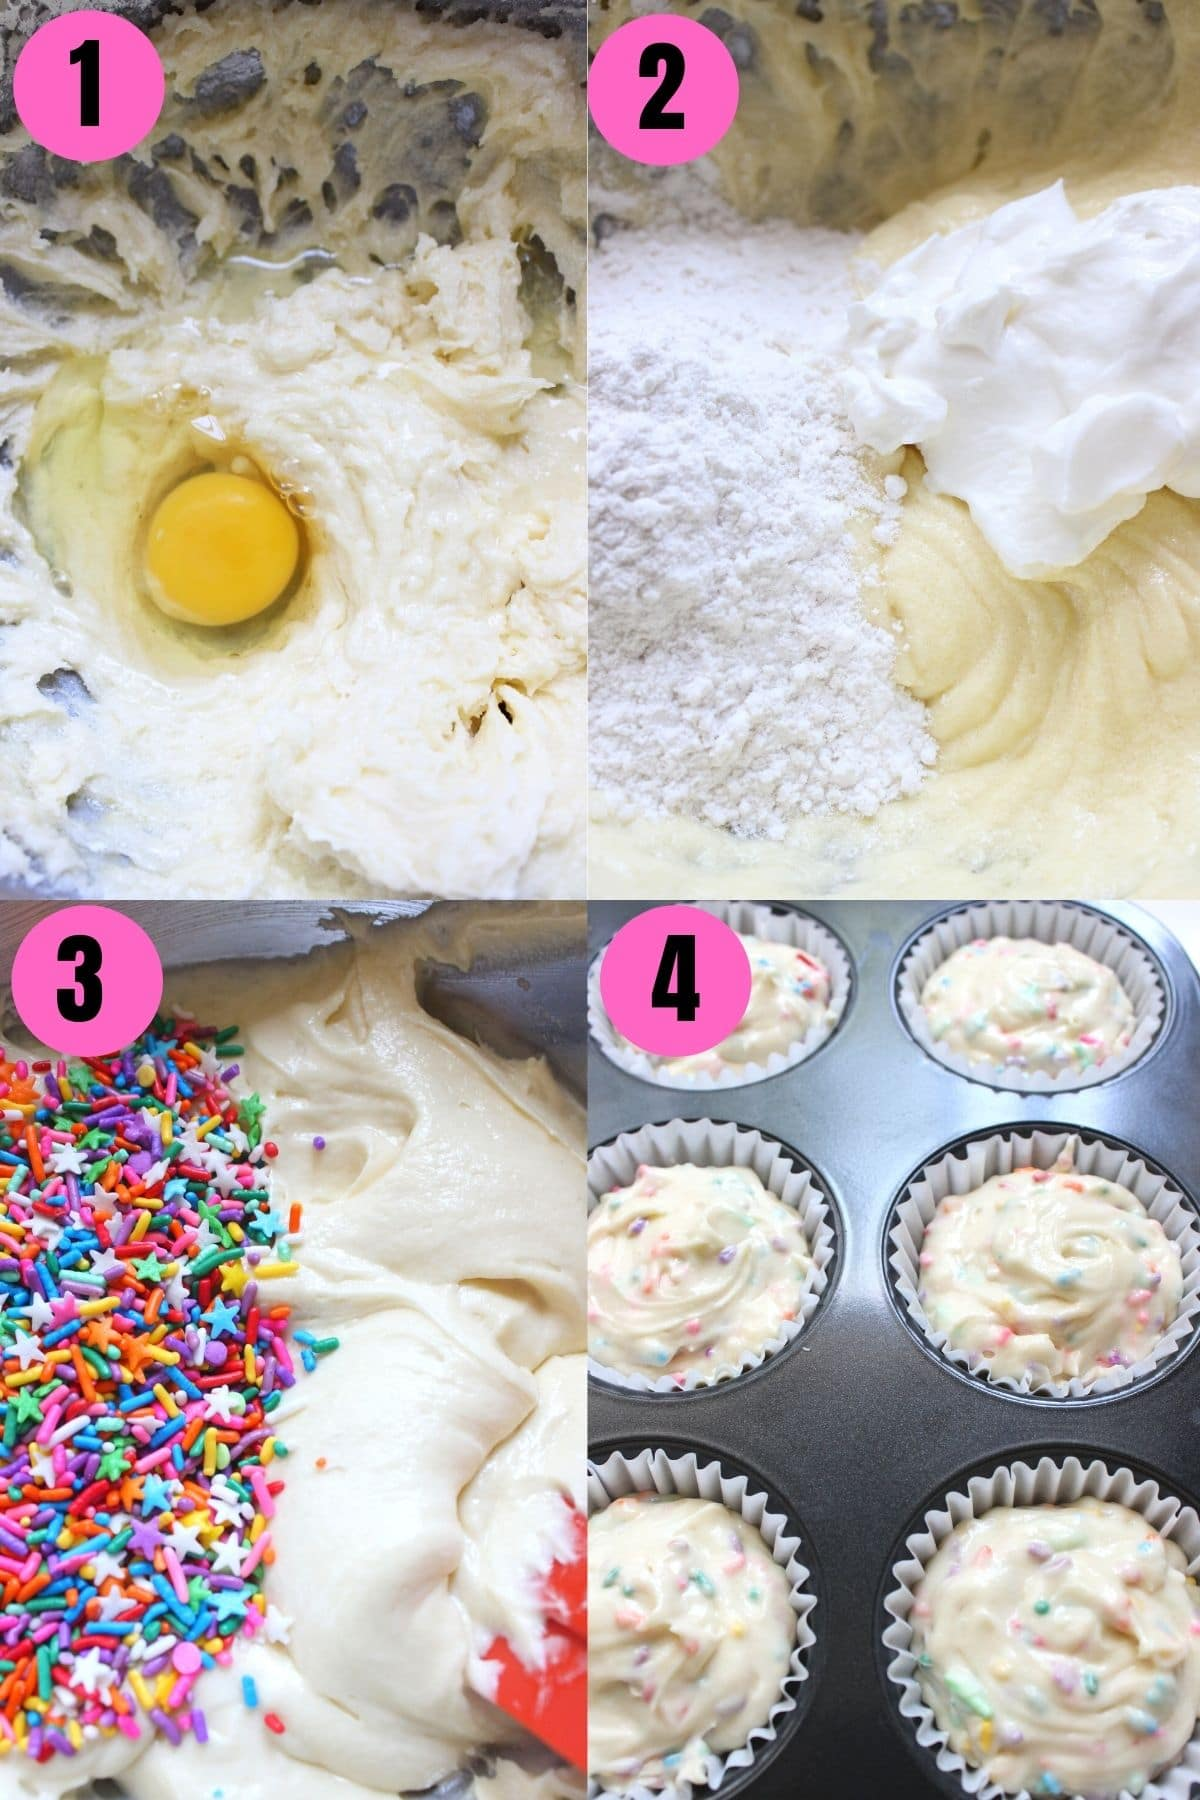 Step by step process to make Funfetti Cupcakes and pouring them in a cupcake liners lined pan.